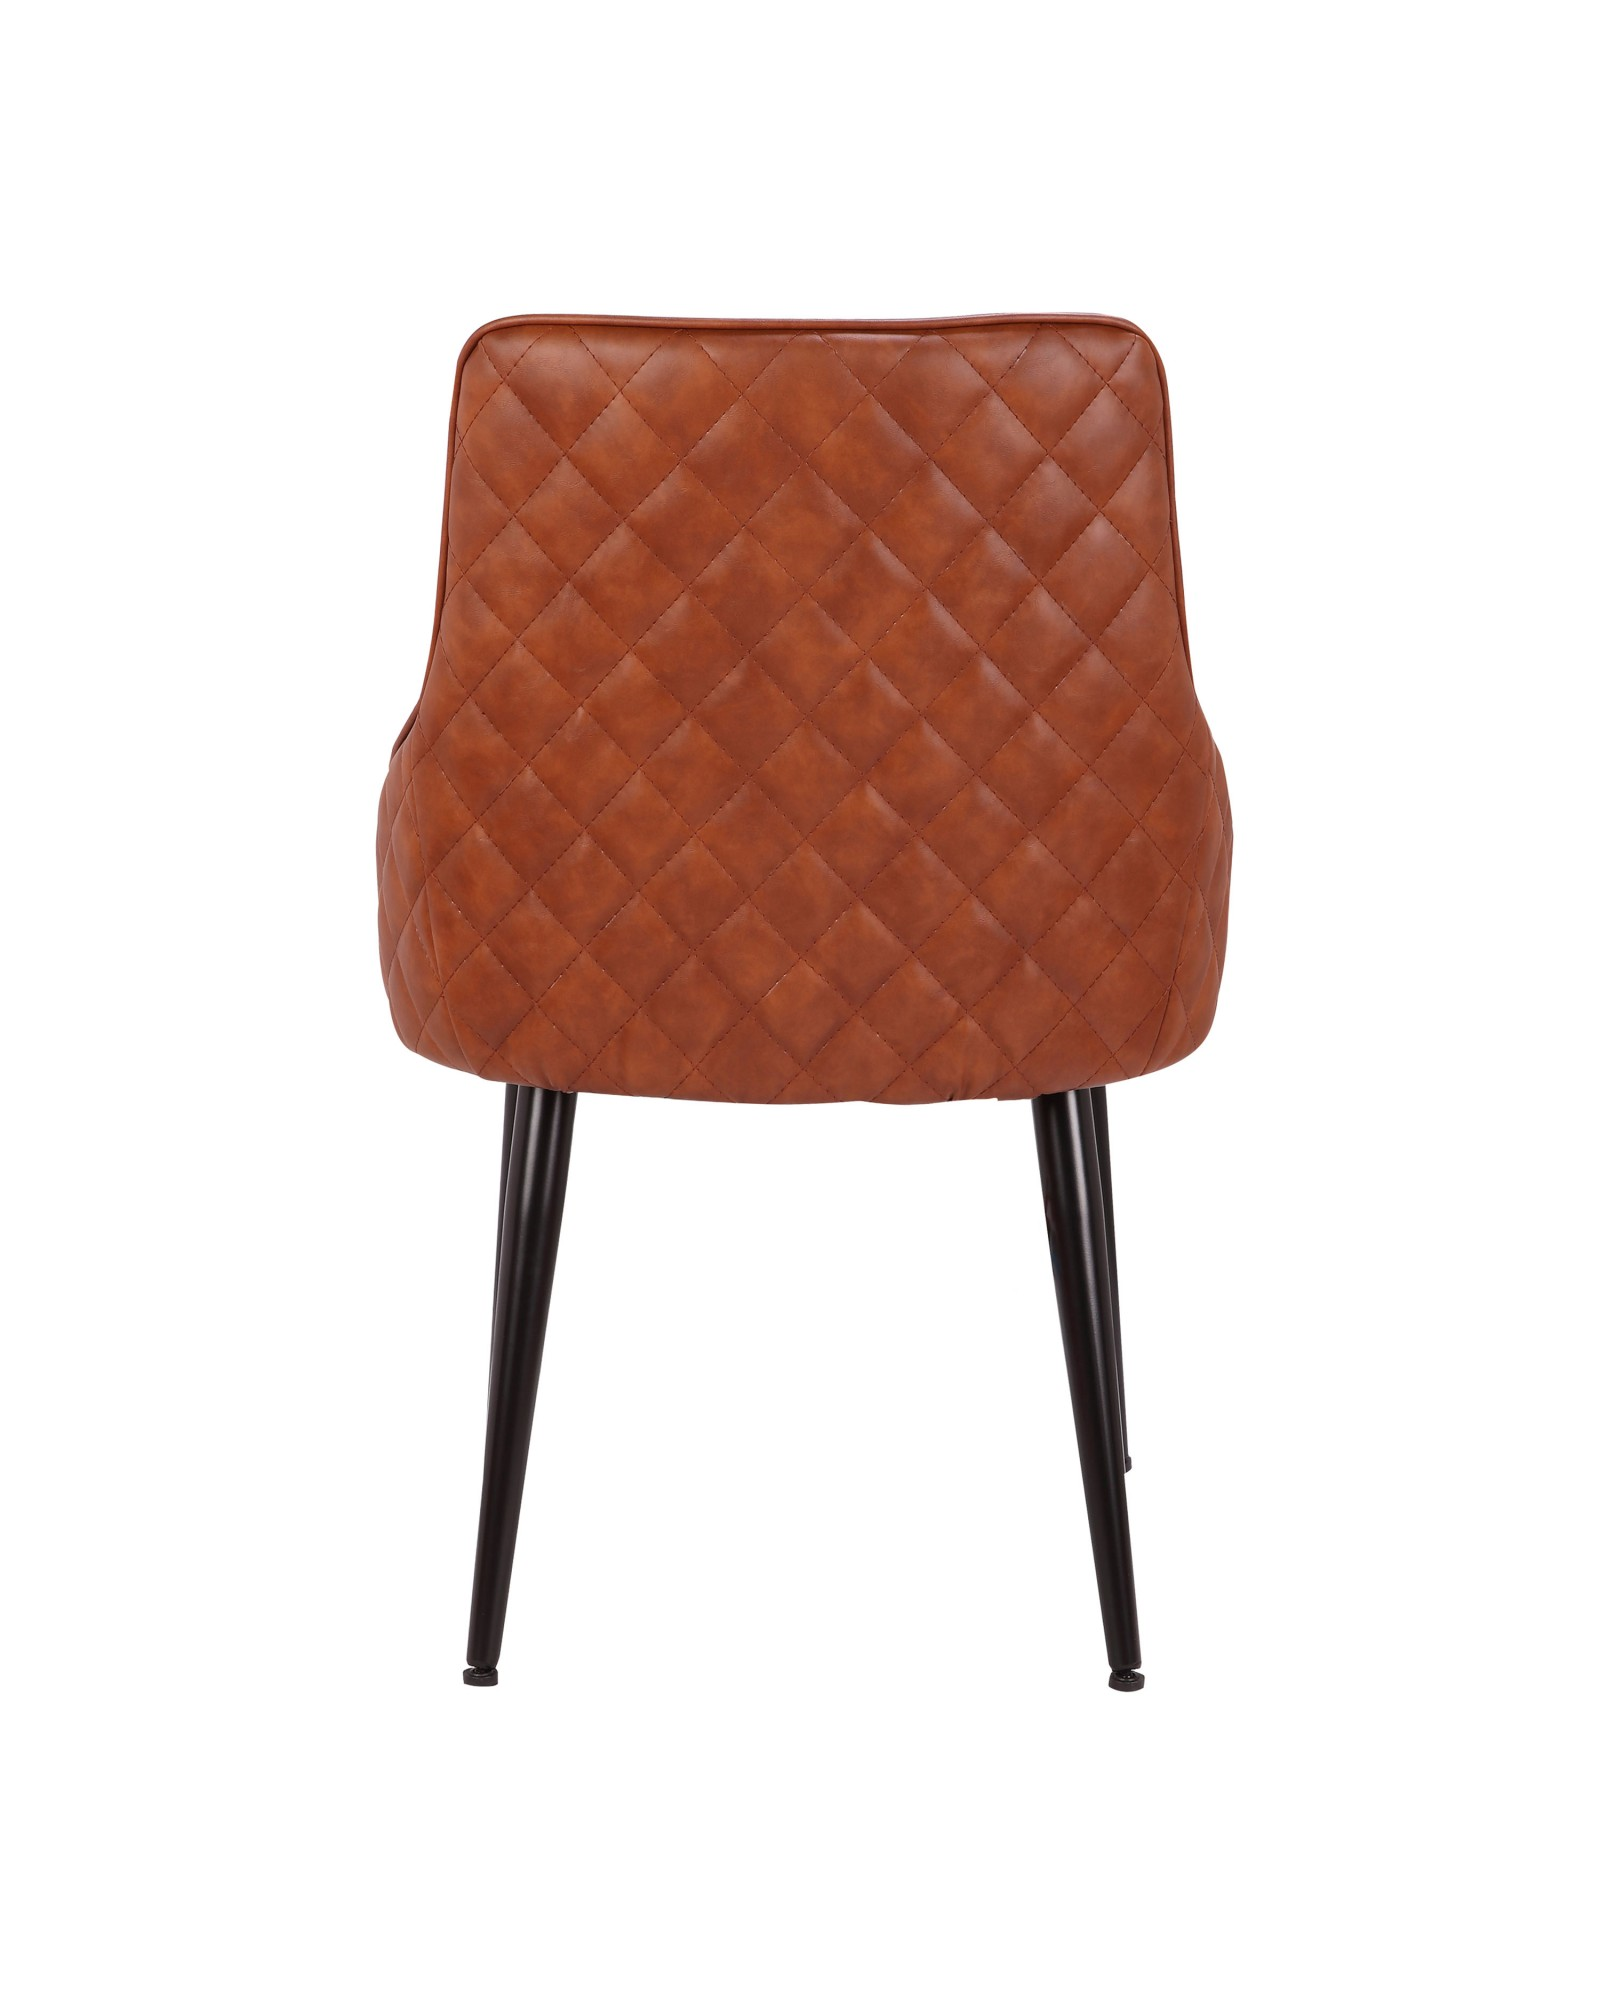 Alden Contemporary Dining/Accent Chair in Brown Faux Leather with Quilted Backrest - Set of 2